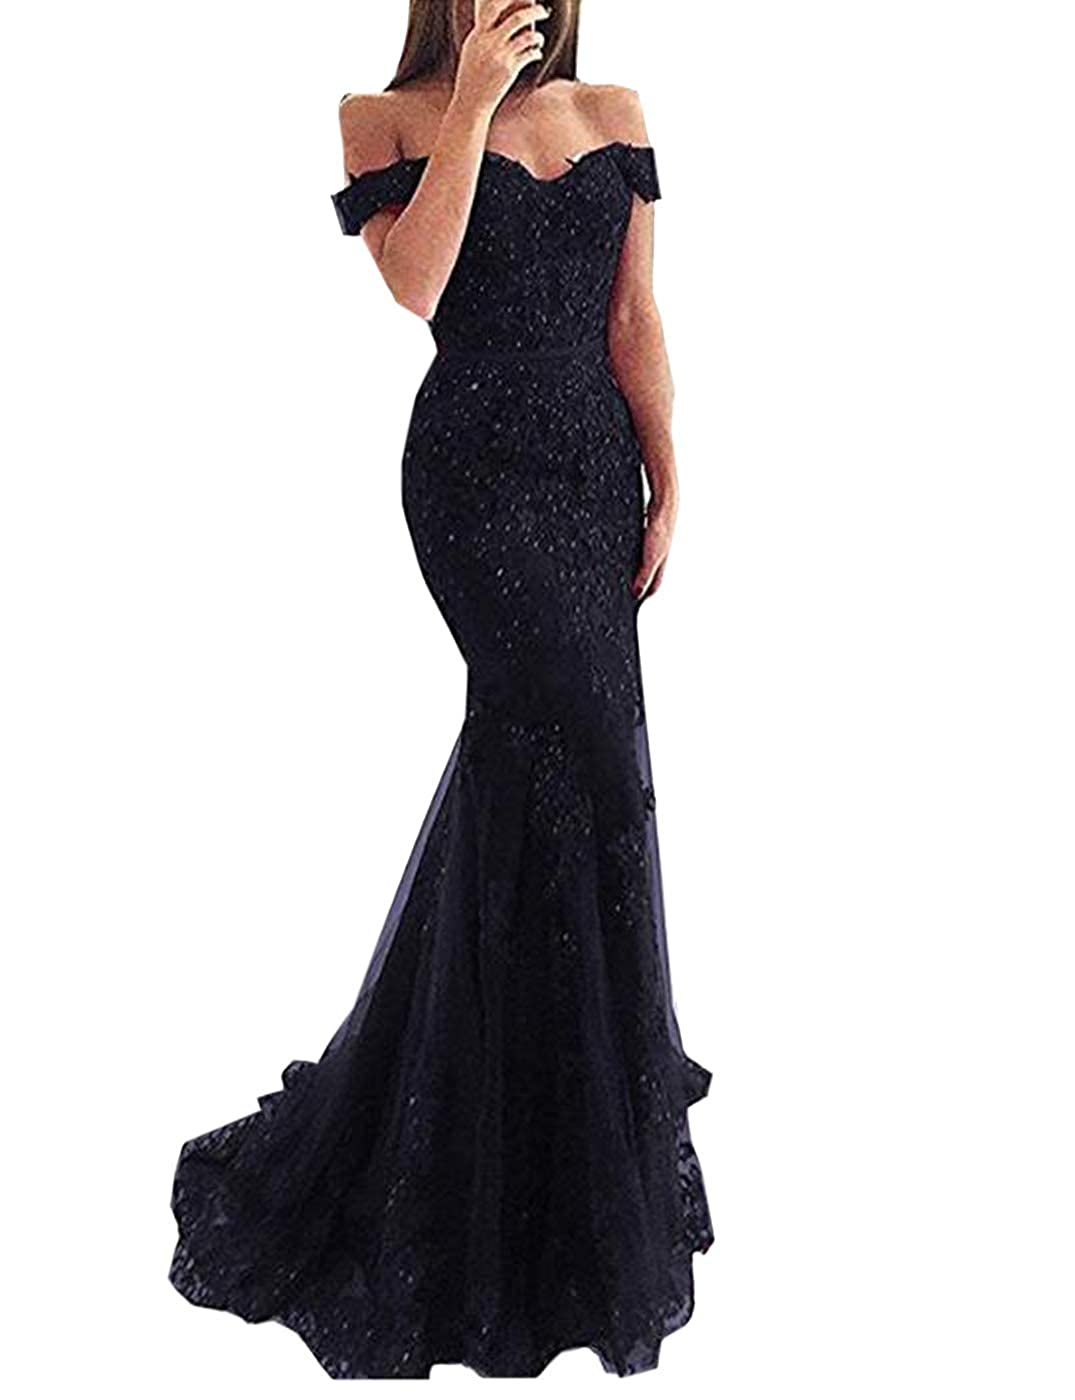 Black Alicebridal Women's Sexy V Neck Off Shoulder Mermaid Prom Dresses Lace Appliques Formal Evening Party Gowns